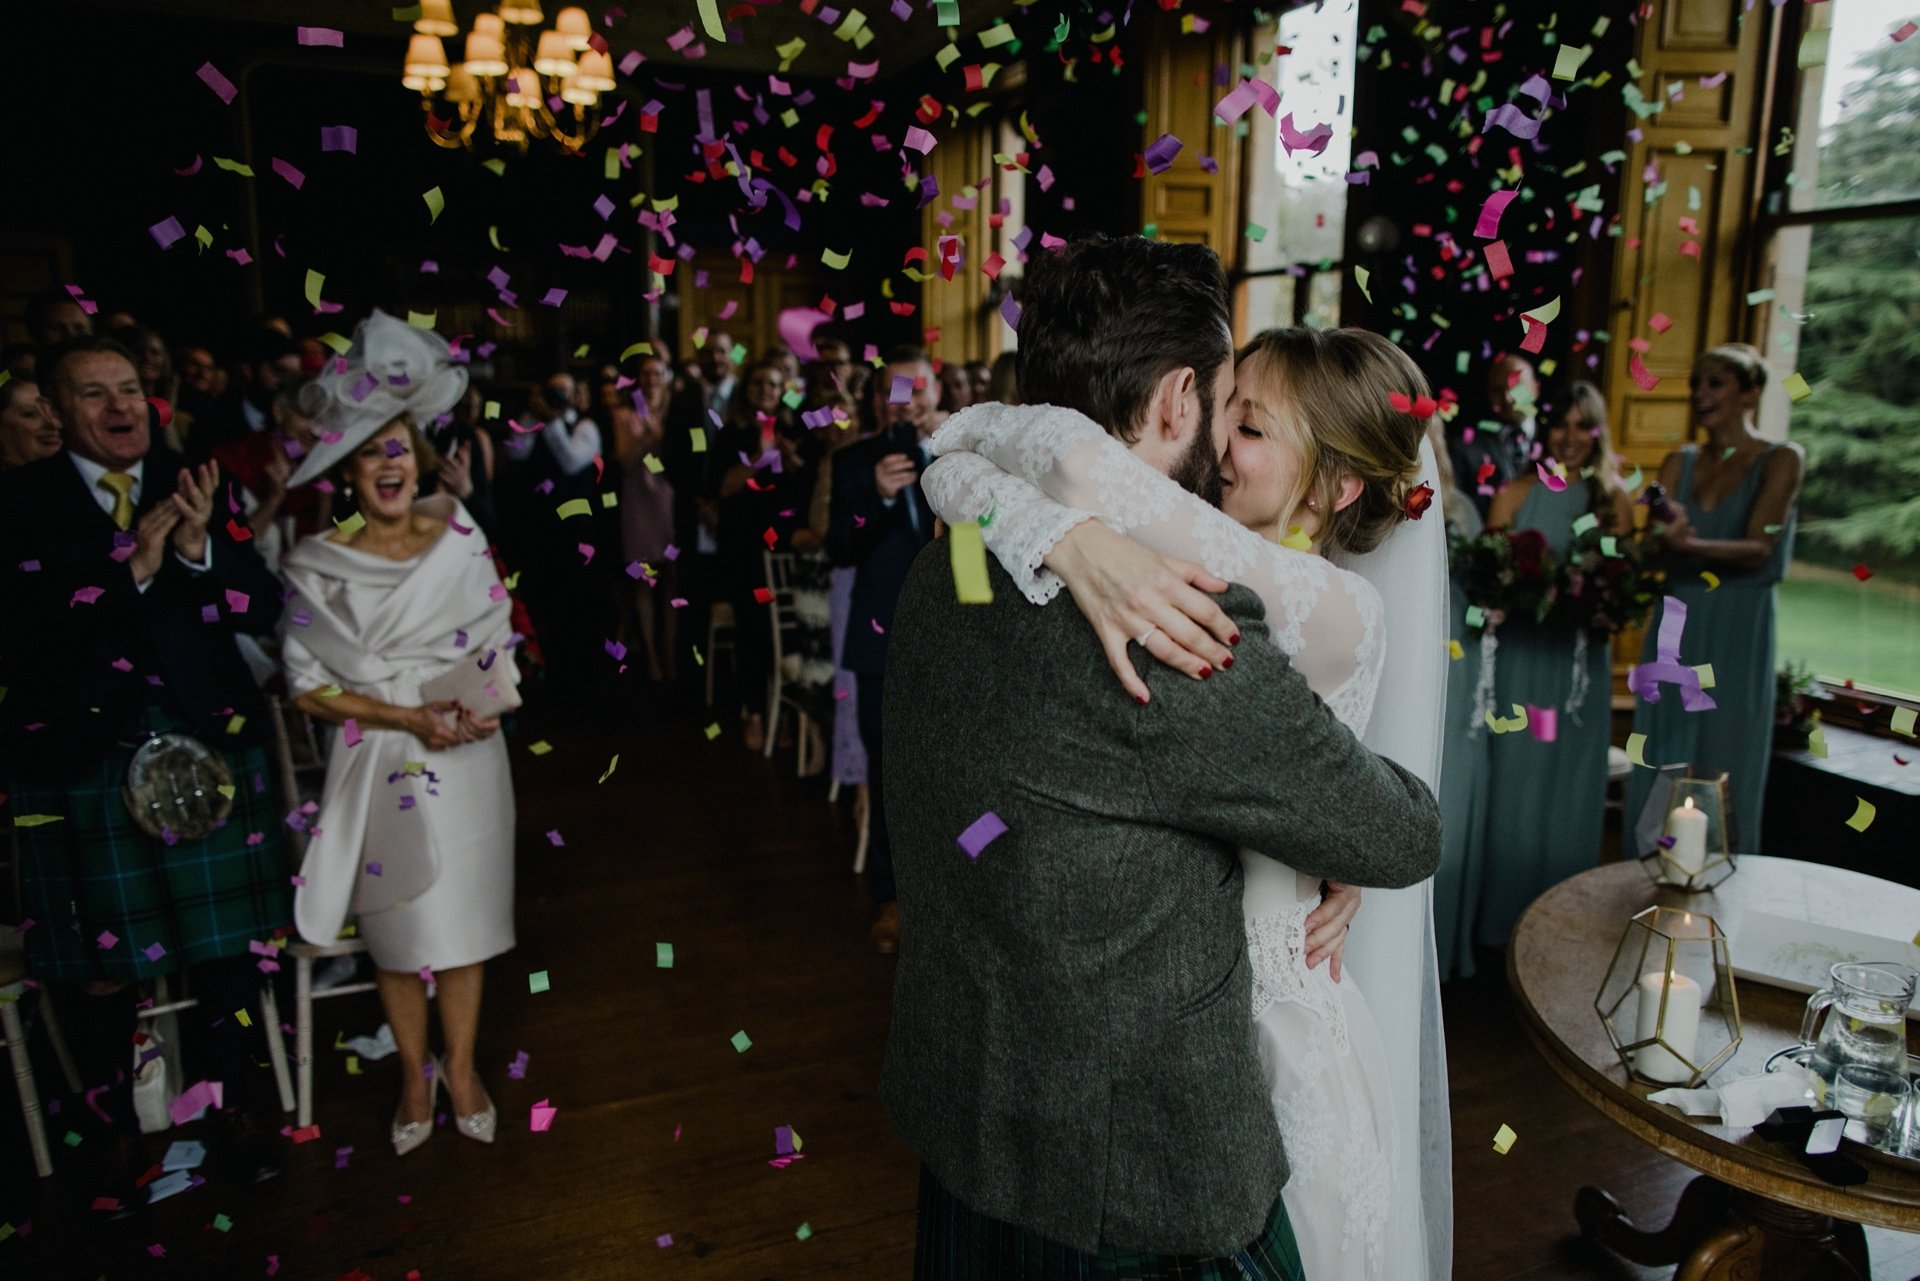 confetti canon moment after their vows wedding at cambo estate scotland